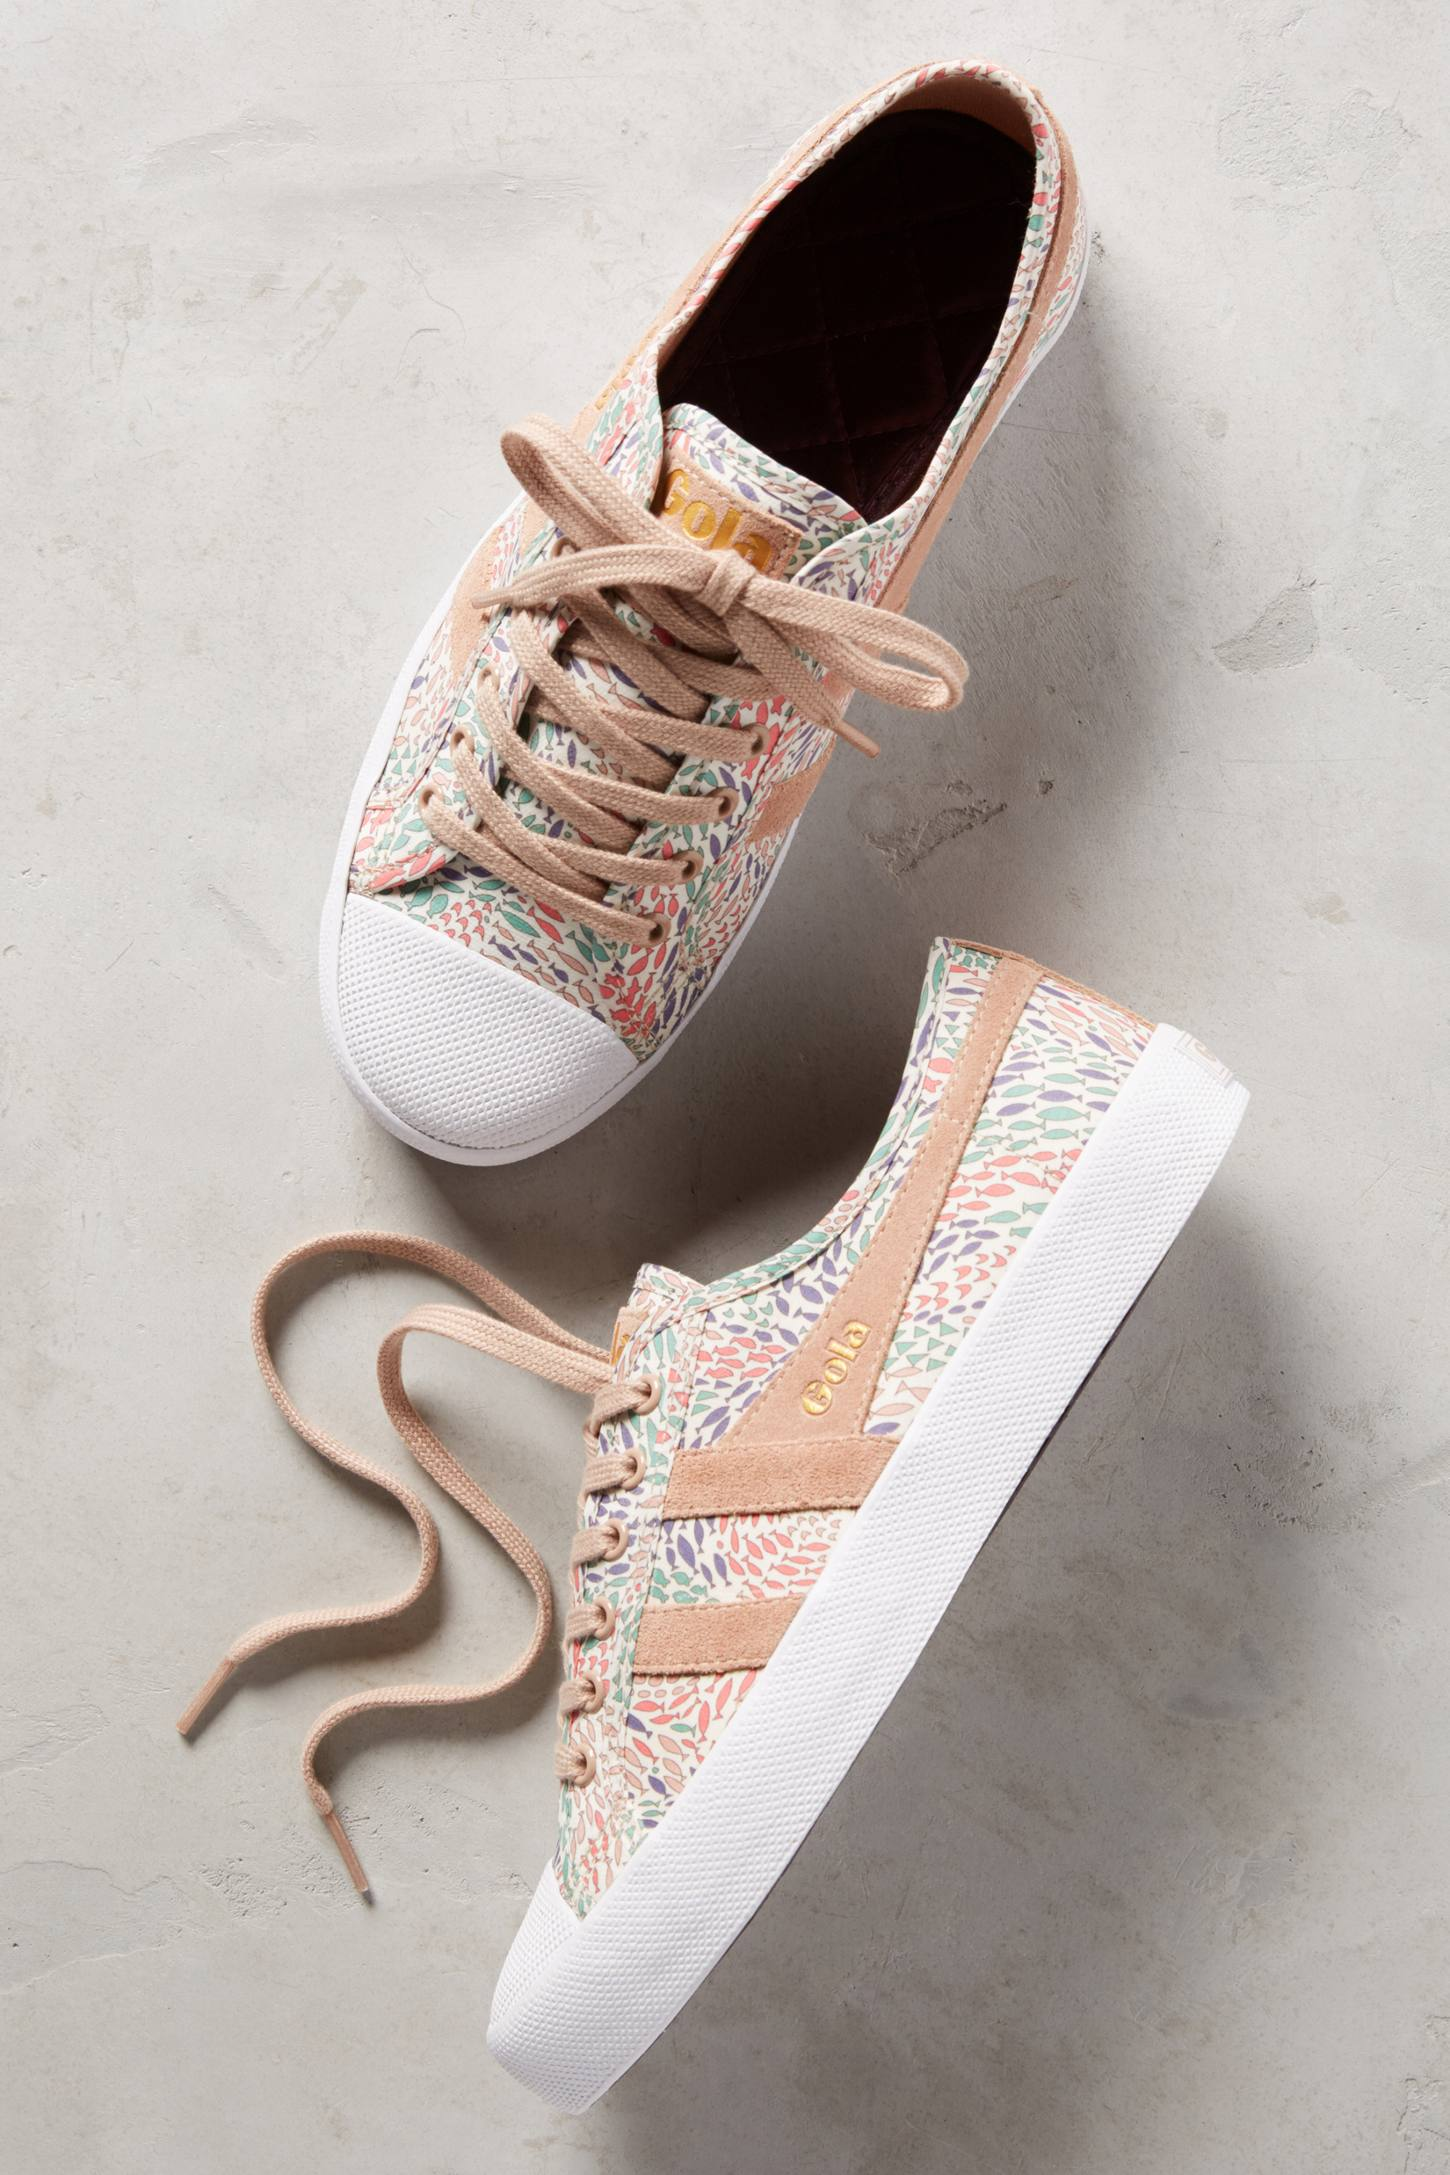 Slide View: 1: Gola x Liberty Coaster Sneakers